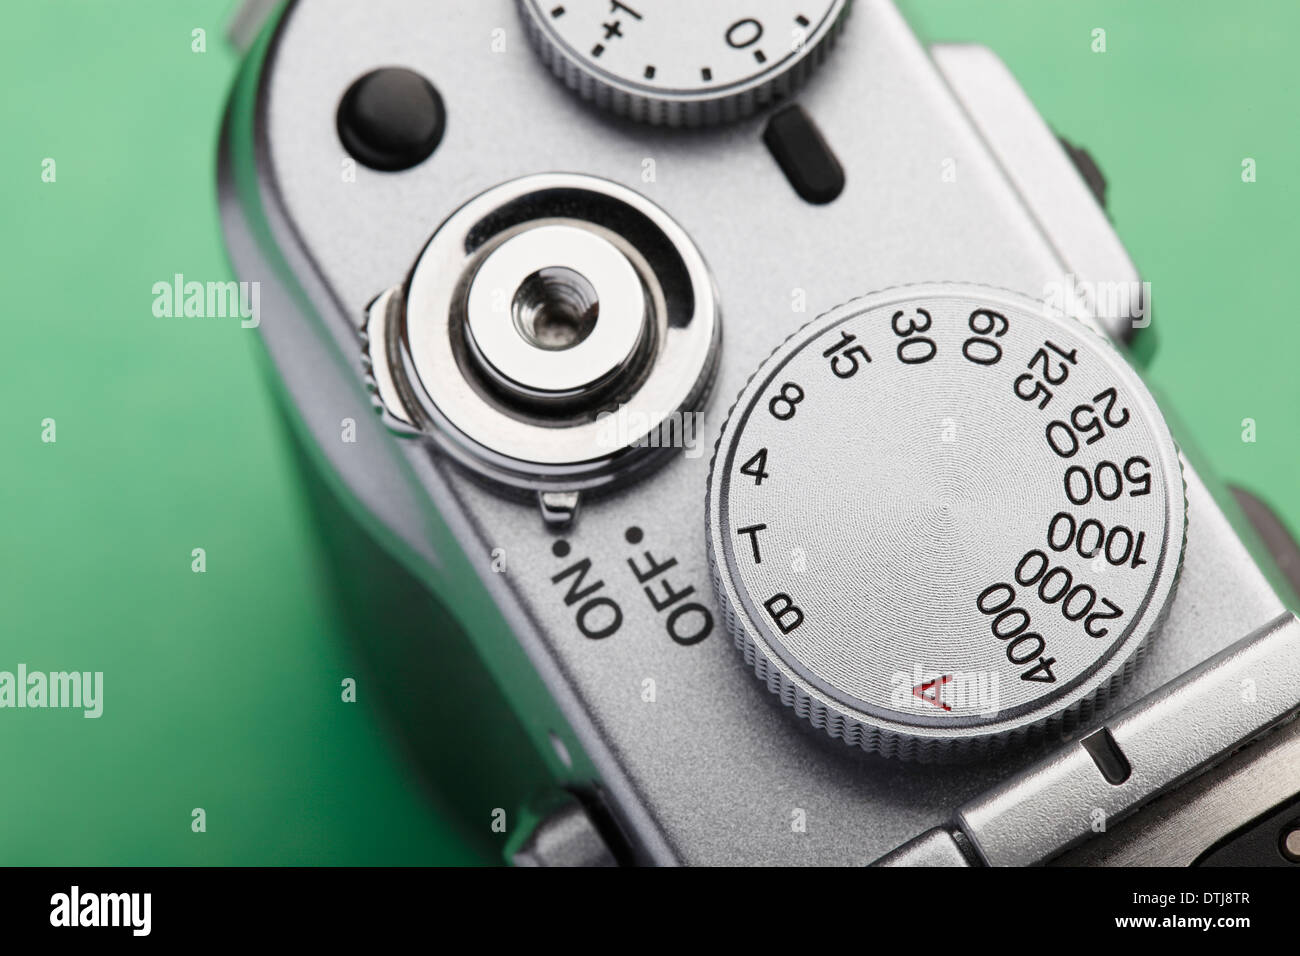 Shutter speed dial on a classical view finder camera - Stock Image